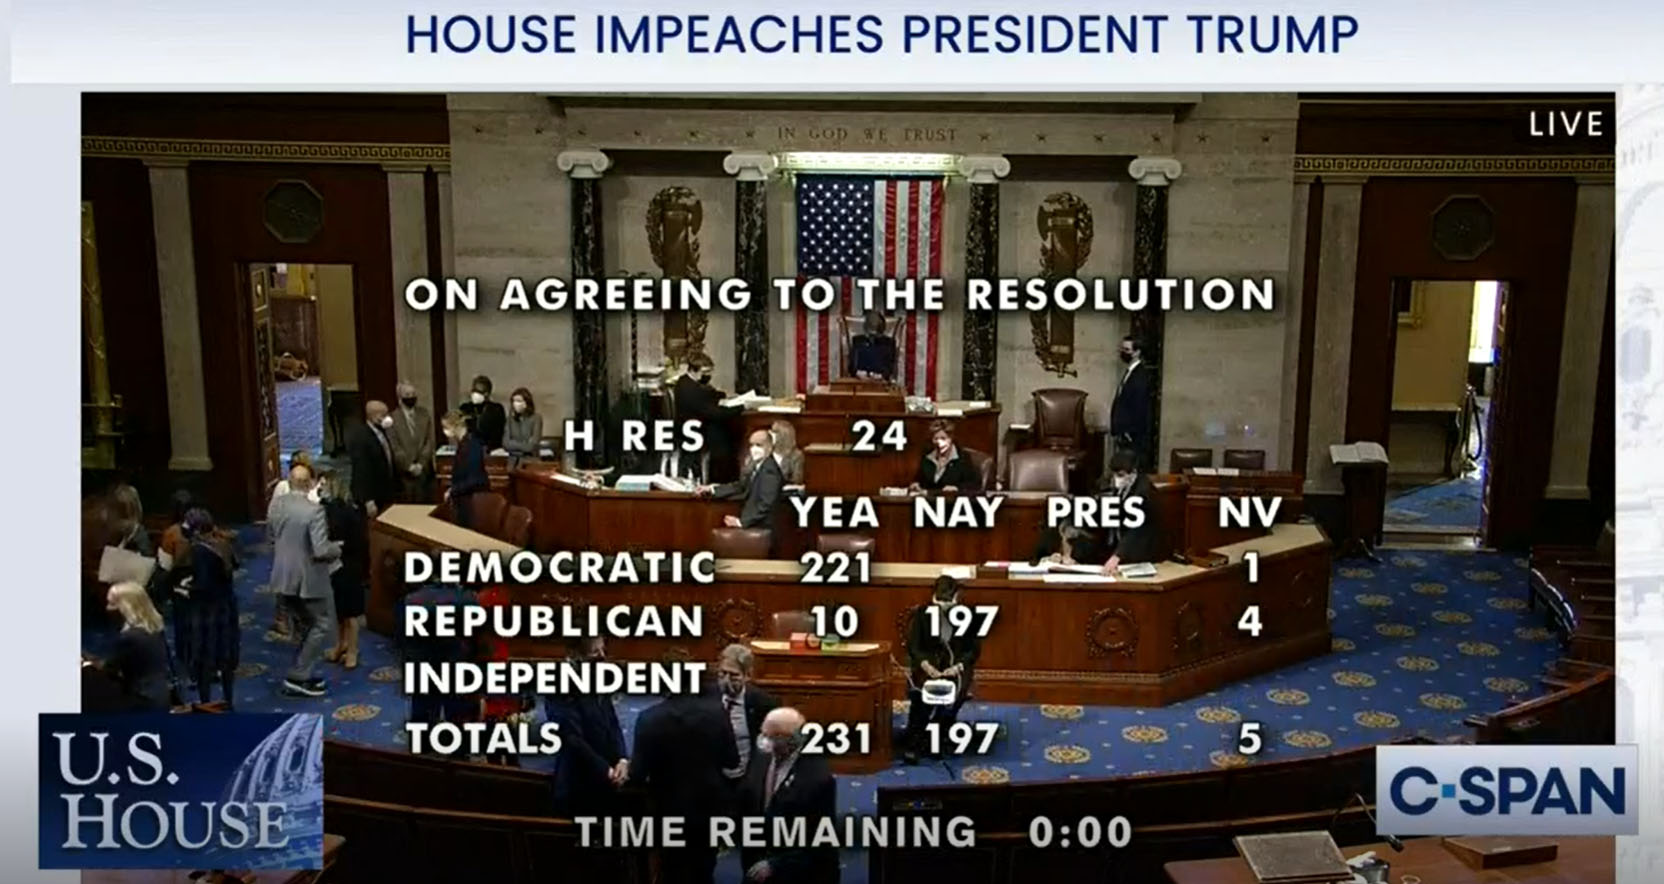 Impeachment bookends and bloodshed